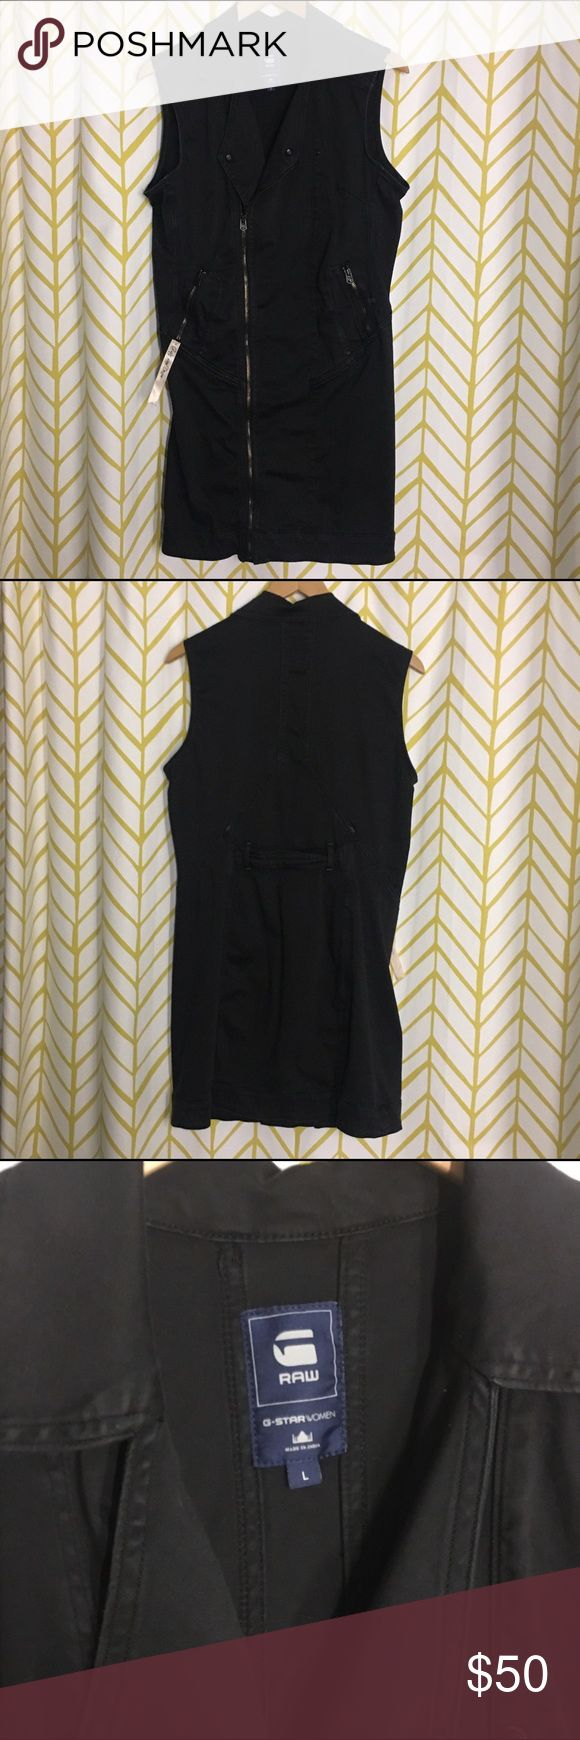 G STAR RAW black sleeveless zip dress Form fitting zip dress has a little give but not stretchy. Great for heels or sneakers. Lots of pockets g star Dresses Mini